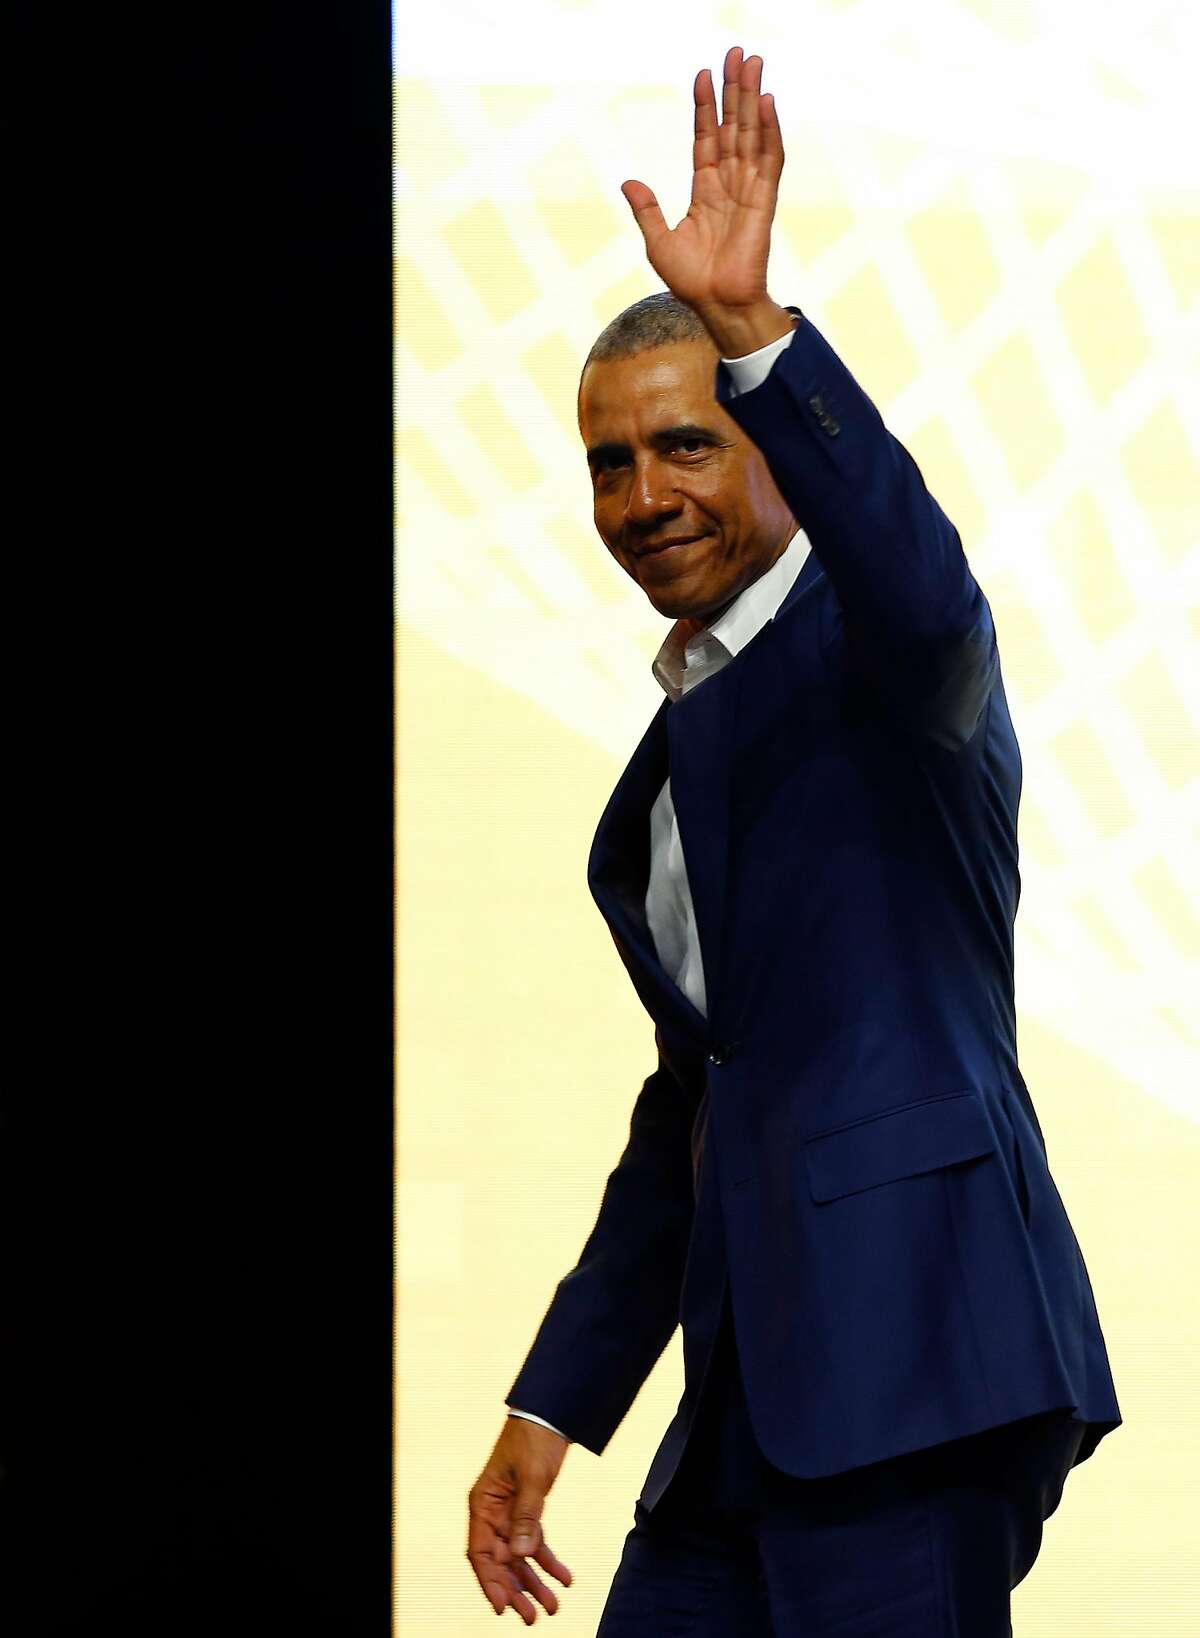 SEVILLE, SPAIN - APRIL 03: Former U.S. President Barack Obama waves during the World Travel and Tourism Council Global Summit on April 03, 2019 in Seville, Spain. Seville is hosting the 19th Summit of the World Travel & Tourism Council, which brings together the leaders of the global travel and tourism industry, from April 3-4. (Photo by Marcelo del Pozo/Getty Images)